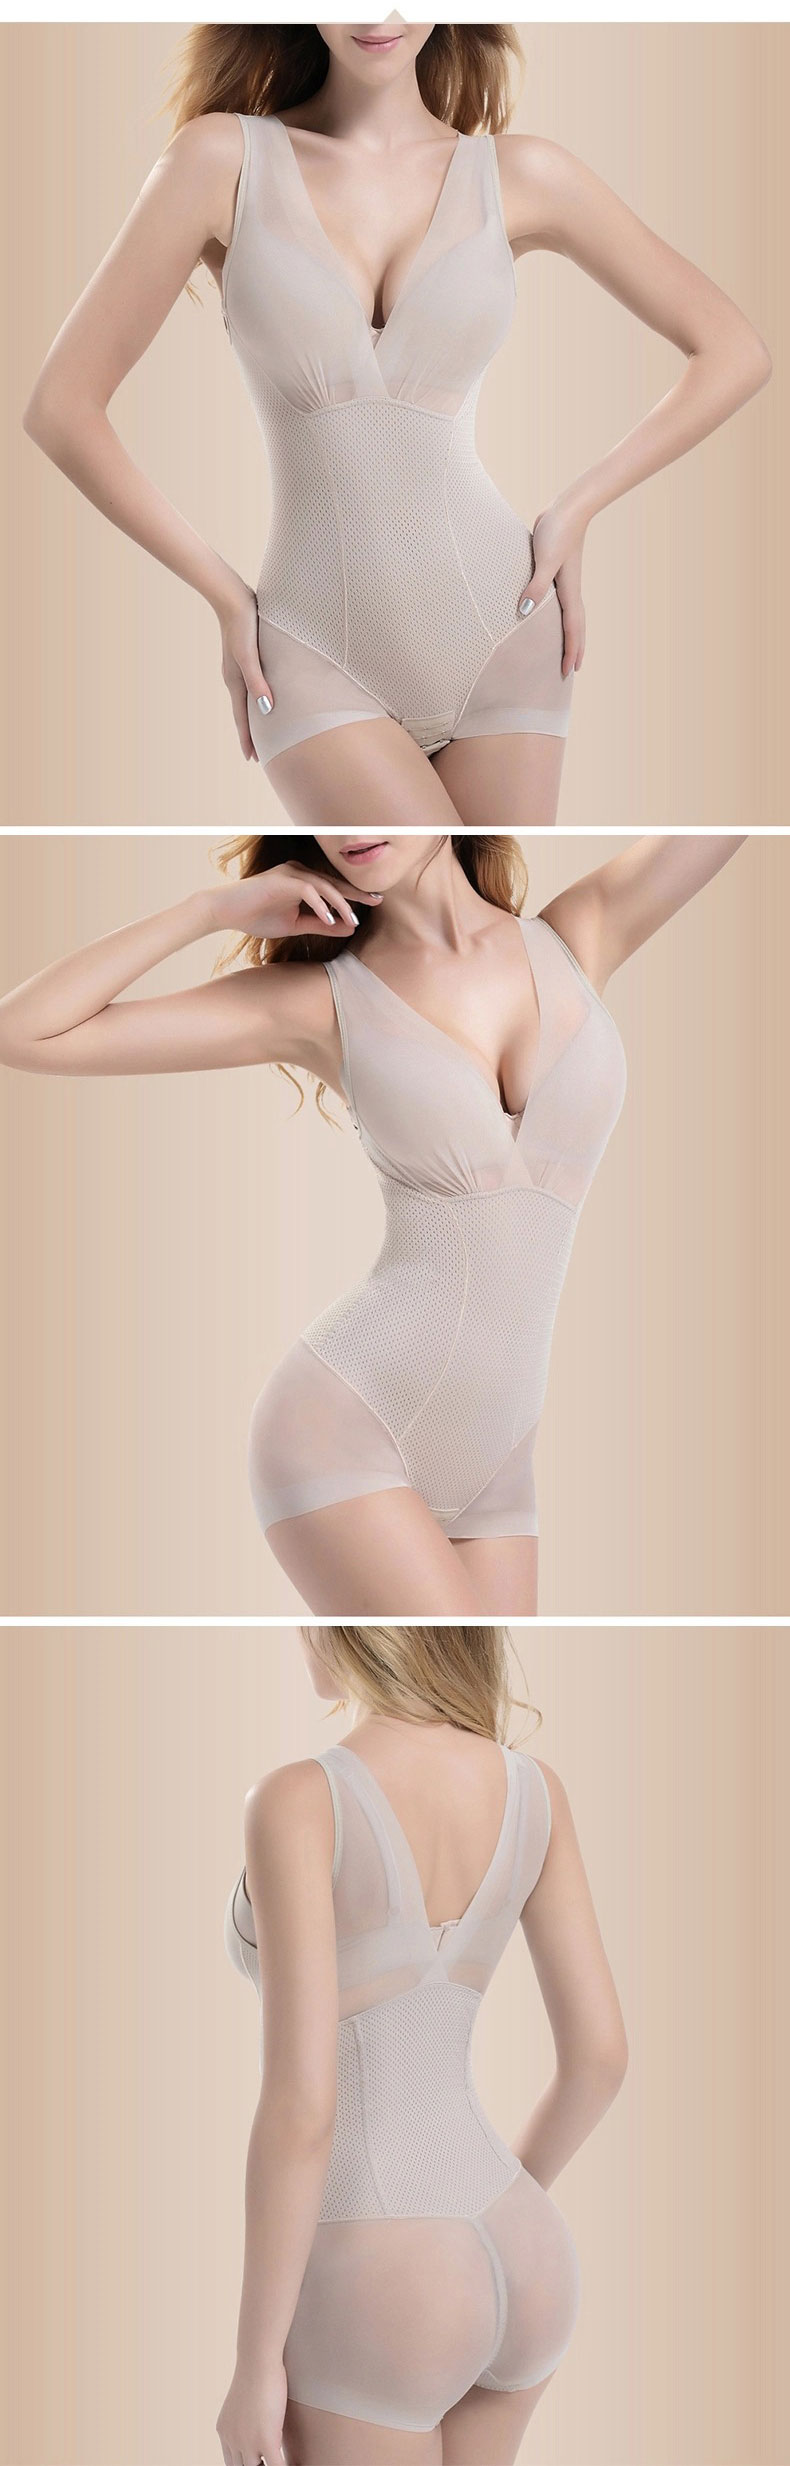 3-in-1 Award Winning Ultra Tummy Flattening Super Waist Slimmer Bust Lifting Seamless One Piece Bodysuit 3